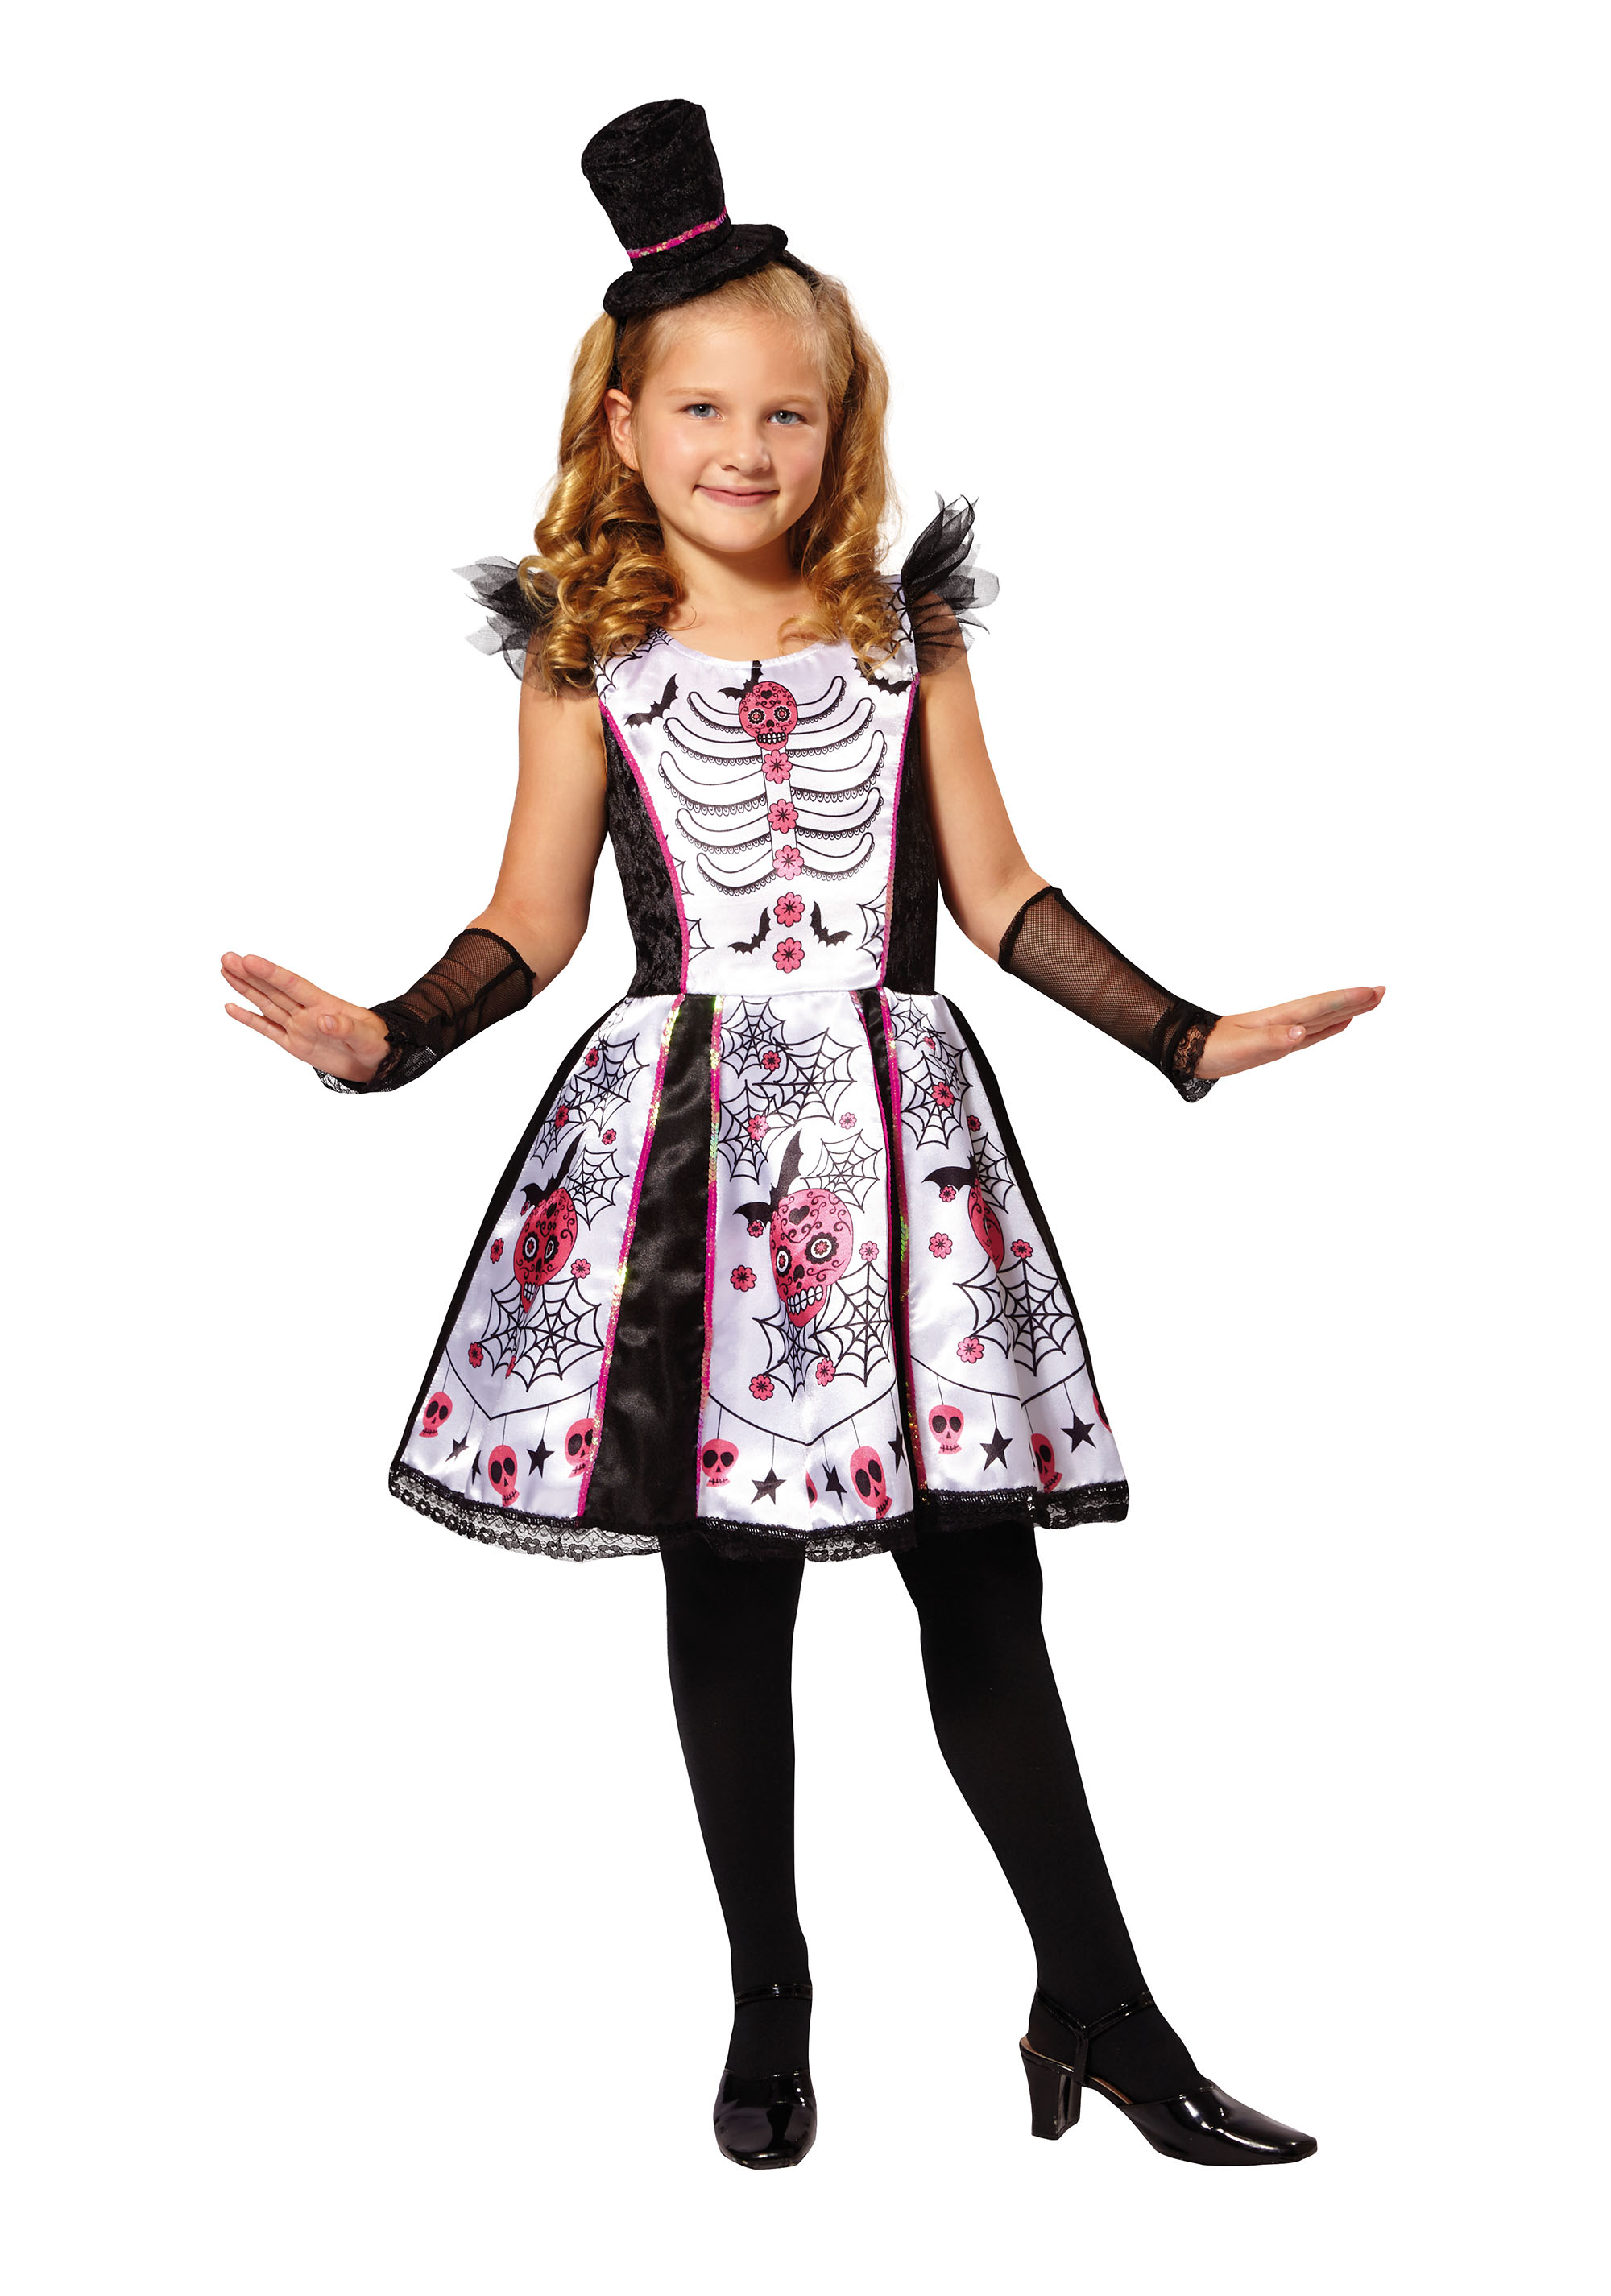 Child's Skeleton Beauty Costume